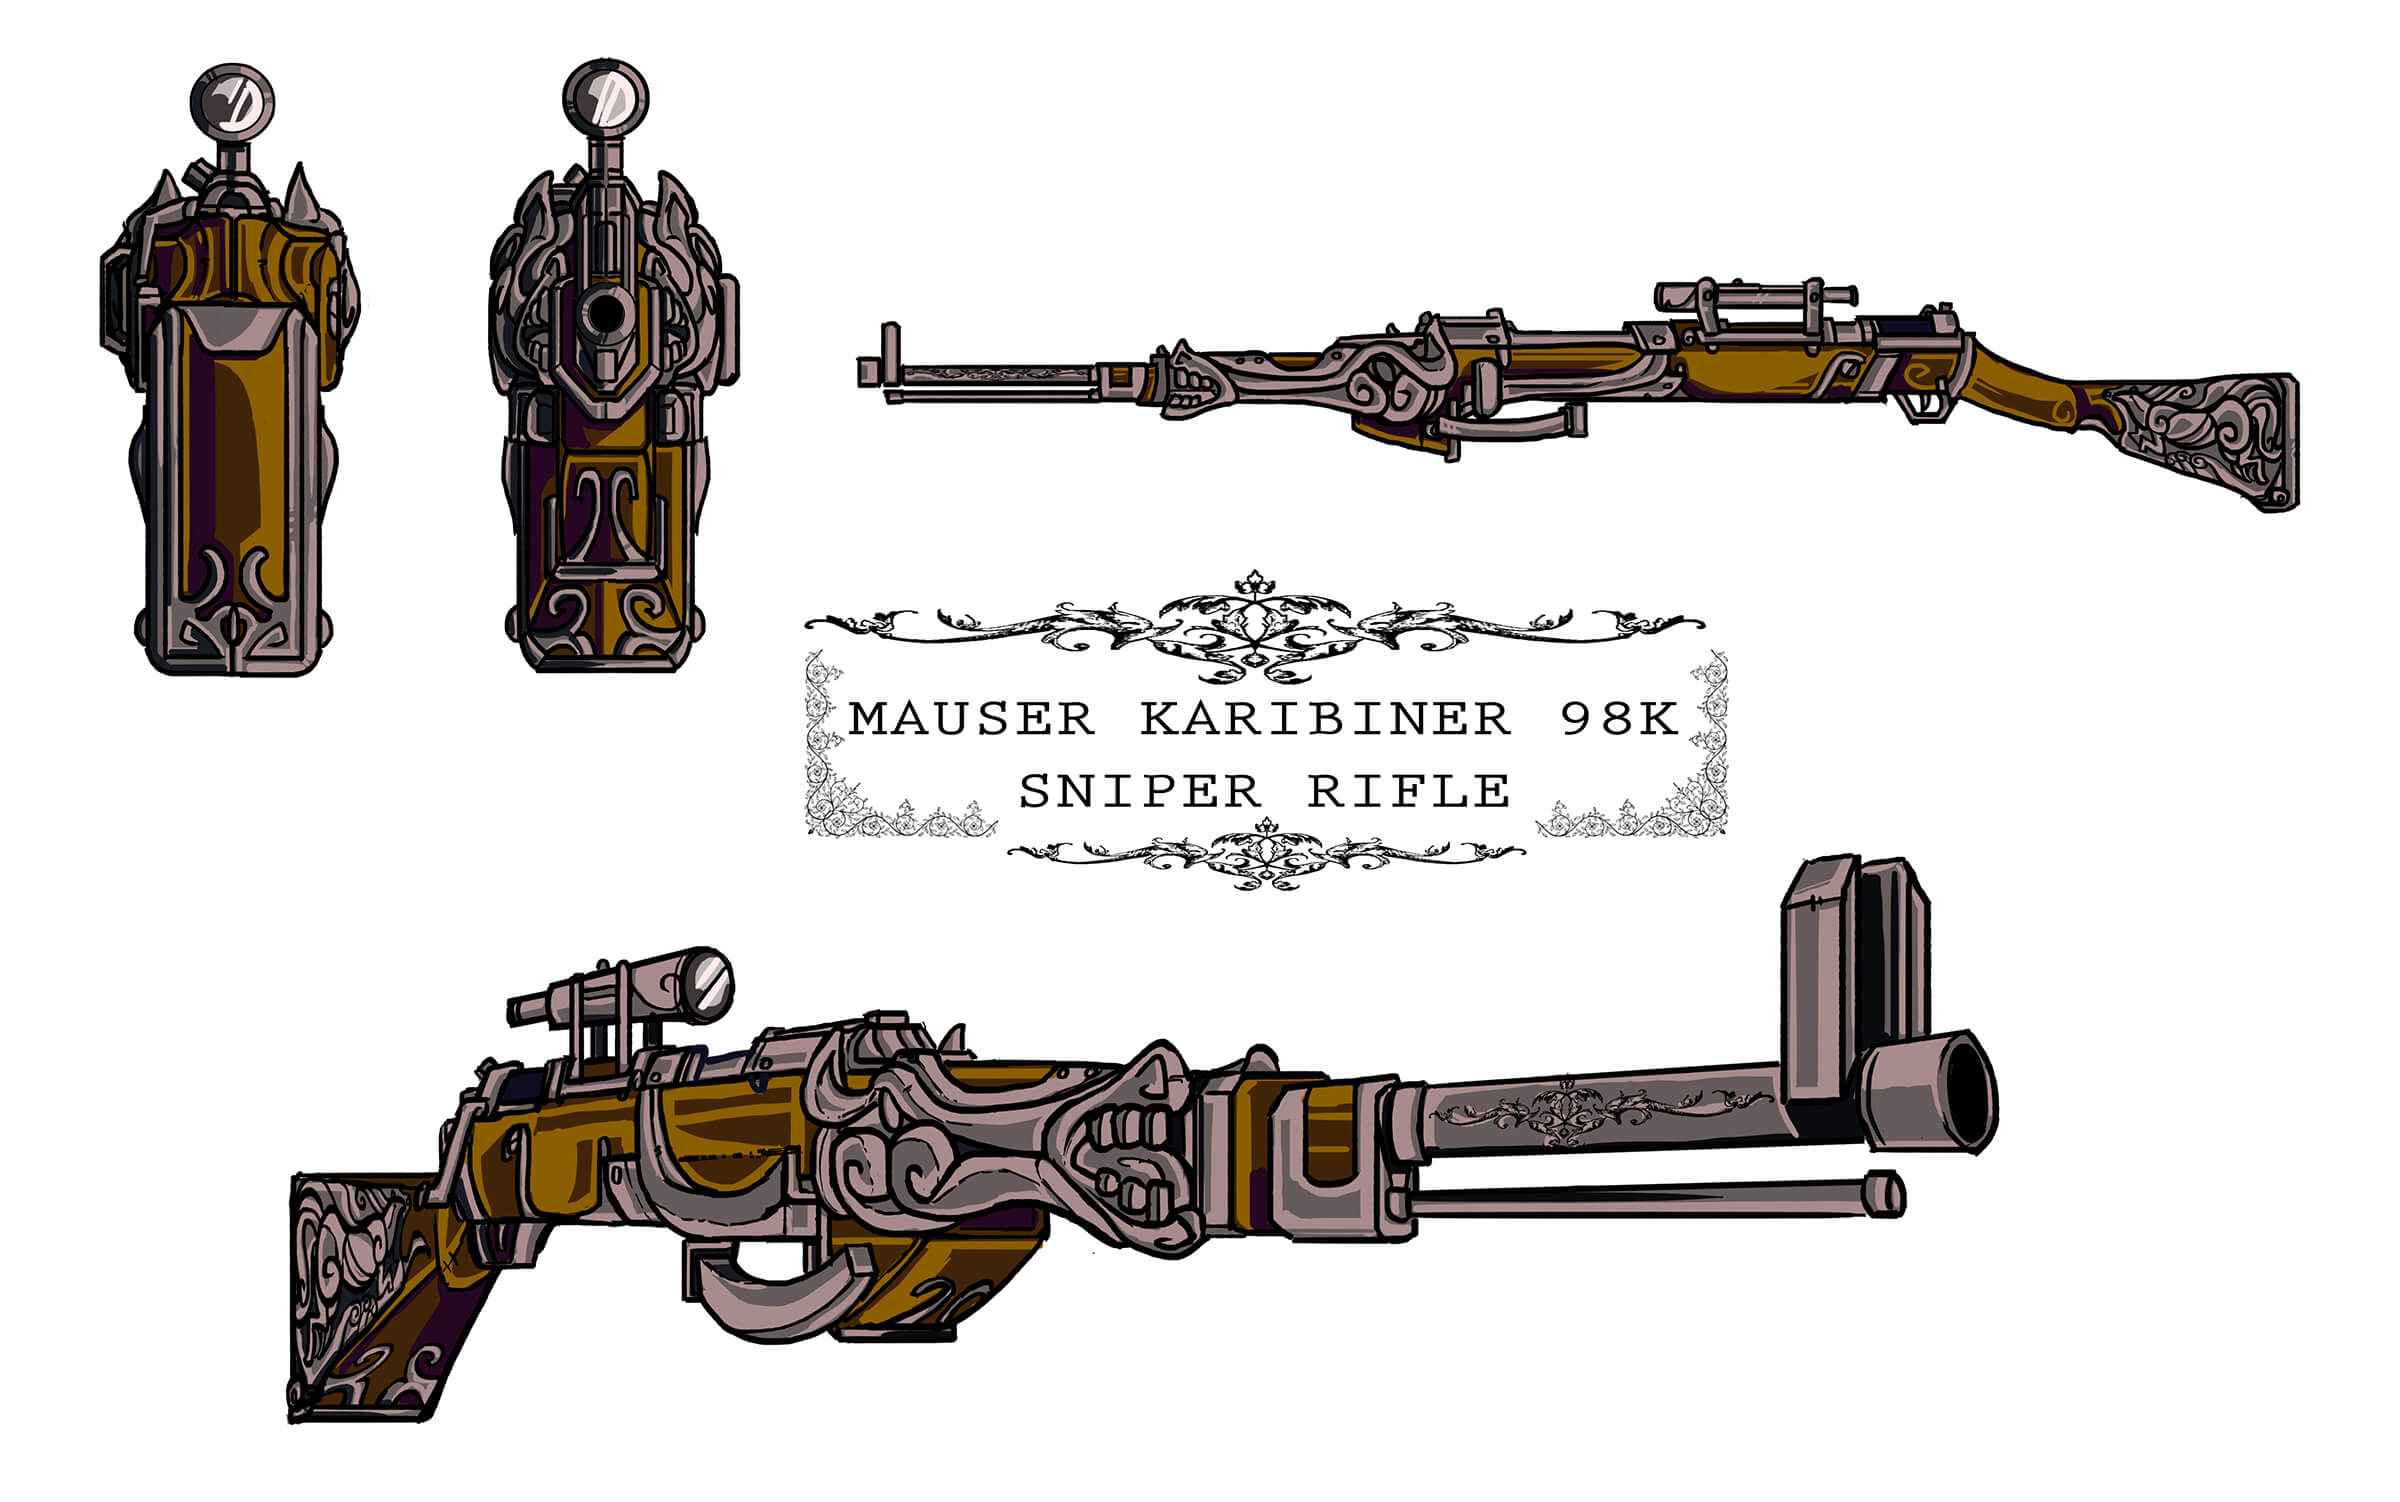 Ornate Mauser sniper rifle decorated with intricate metal flourishes, seen from several angles.